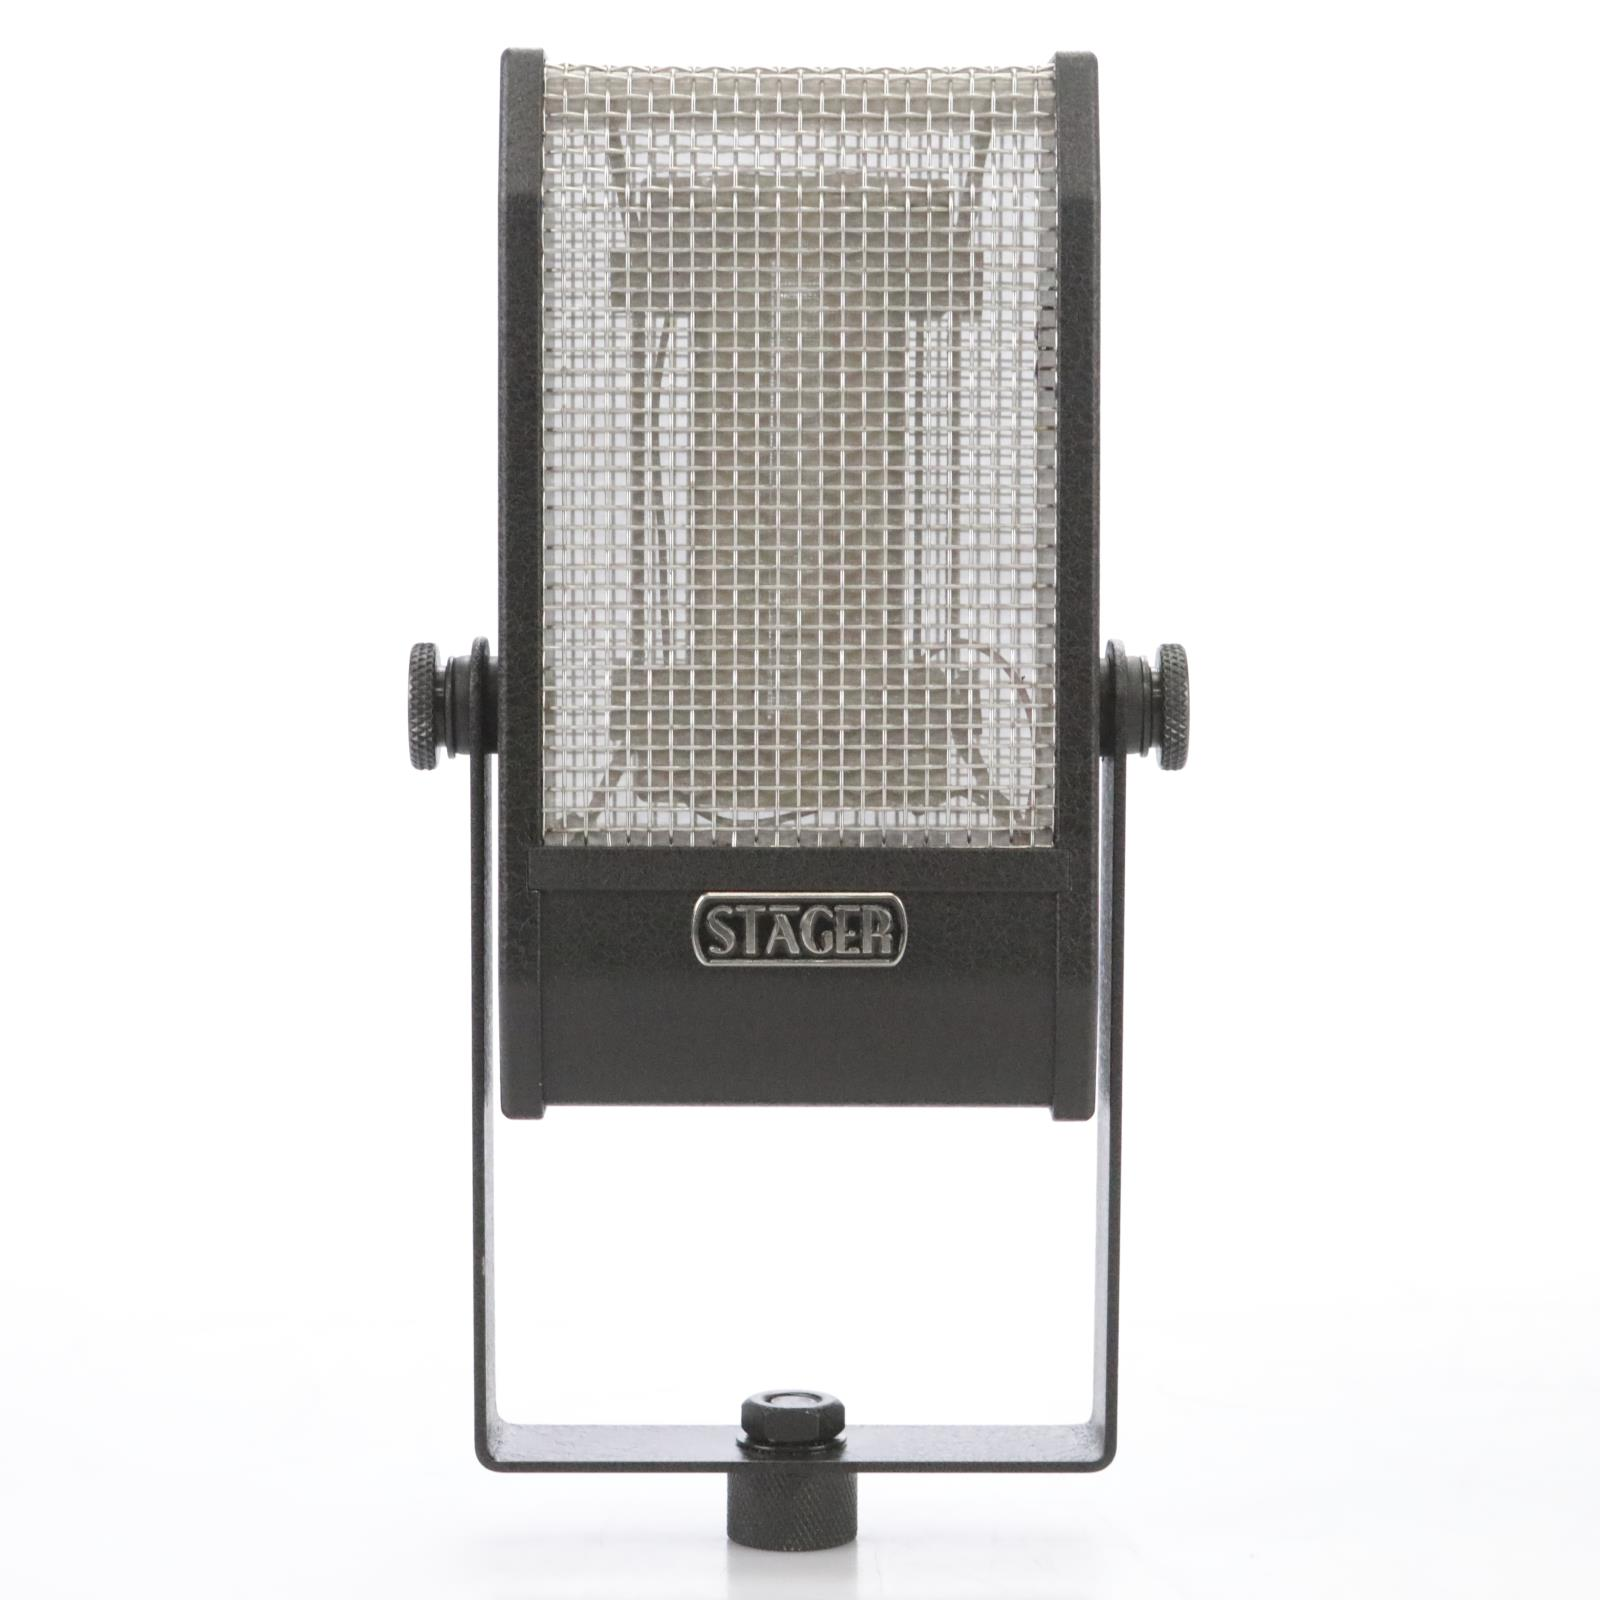 Stager SR-3 Long Ribbon Microphone w/ Case #44849